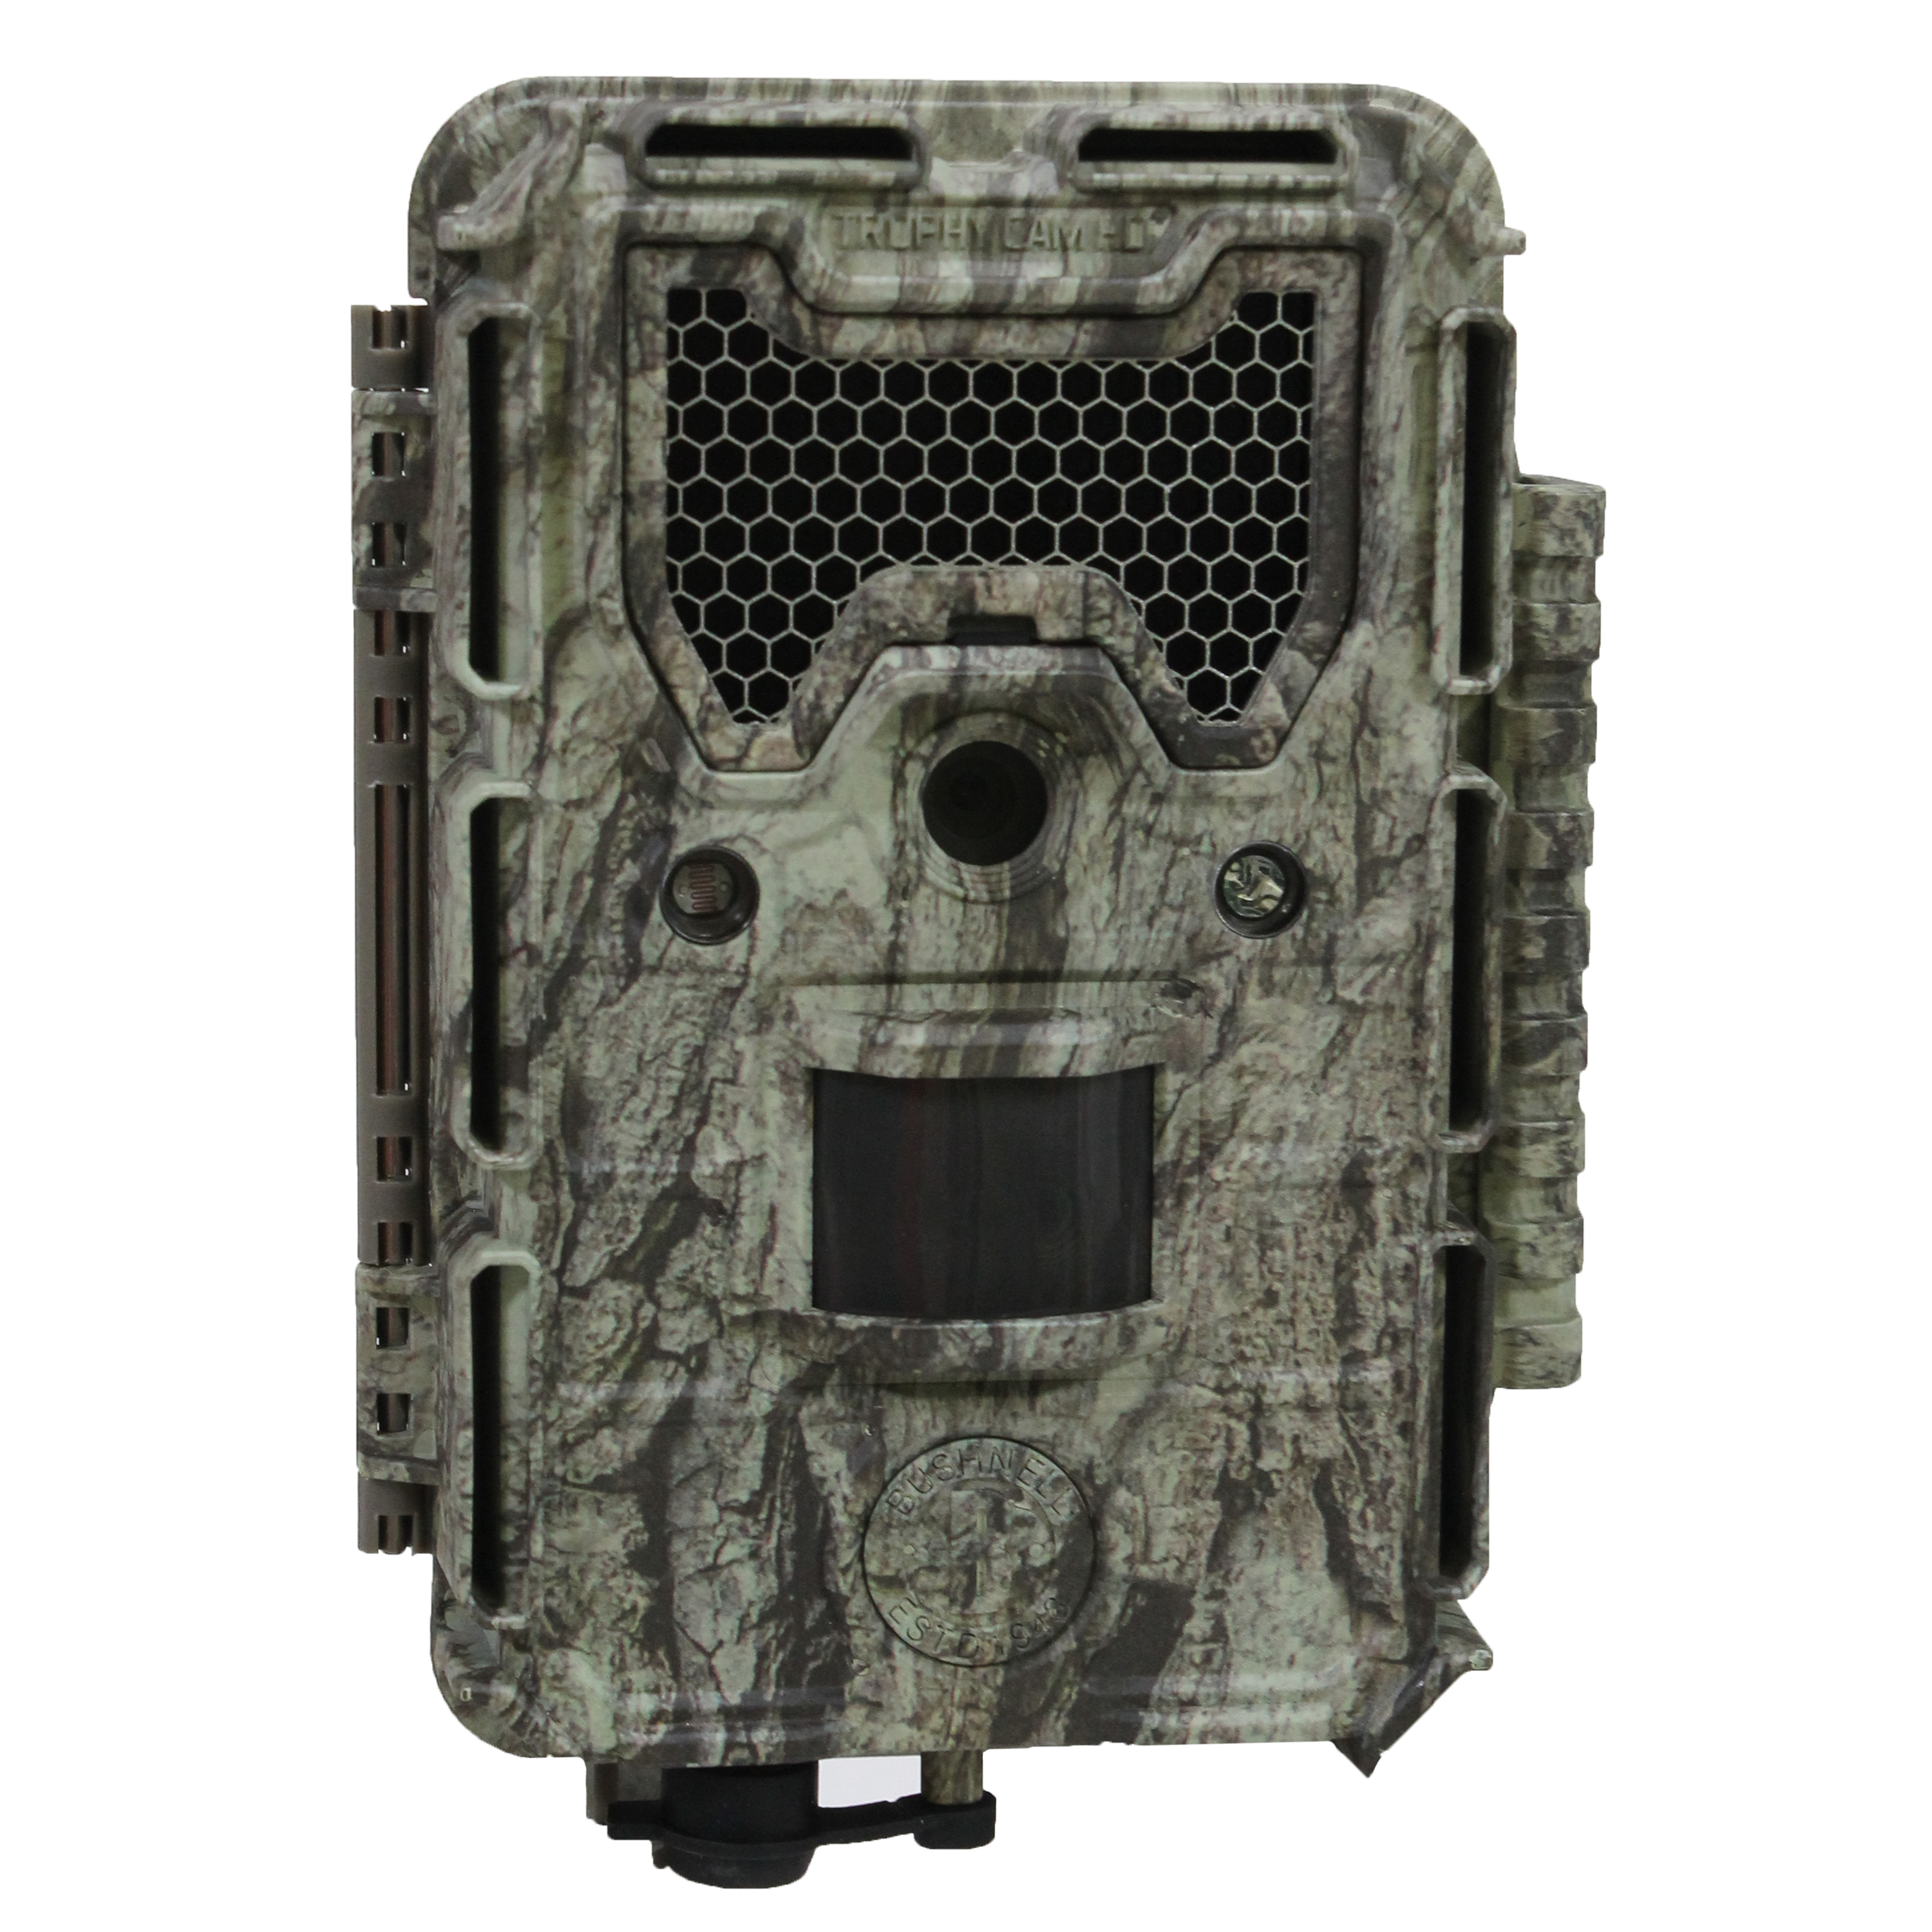 Bushnell Trophy Cam Aggressor HD Low Glow Game Camera - 24 Megapixel, Camo